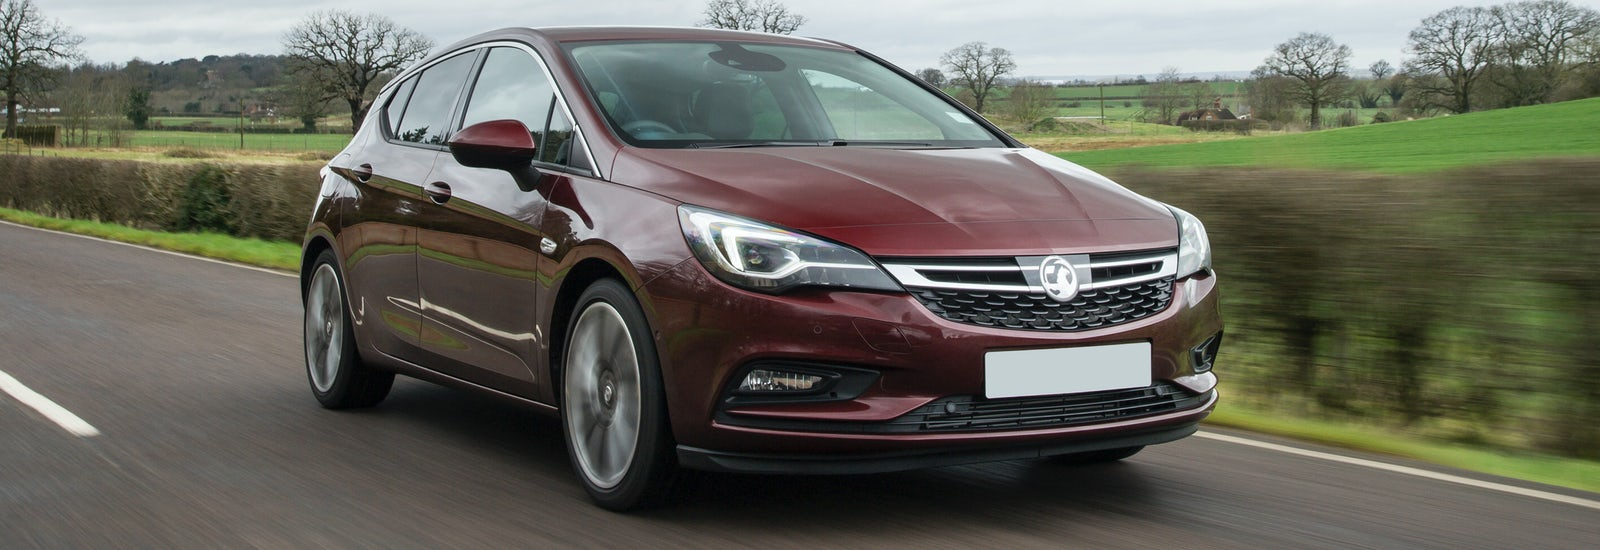 Most Economical Used Car For Motorway Driving